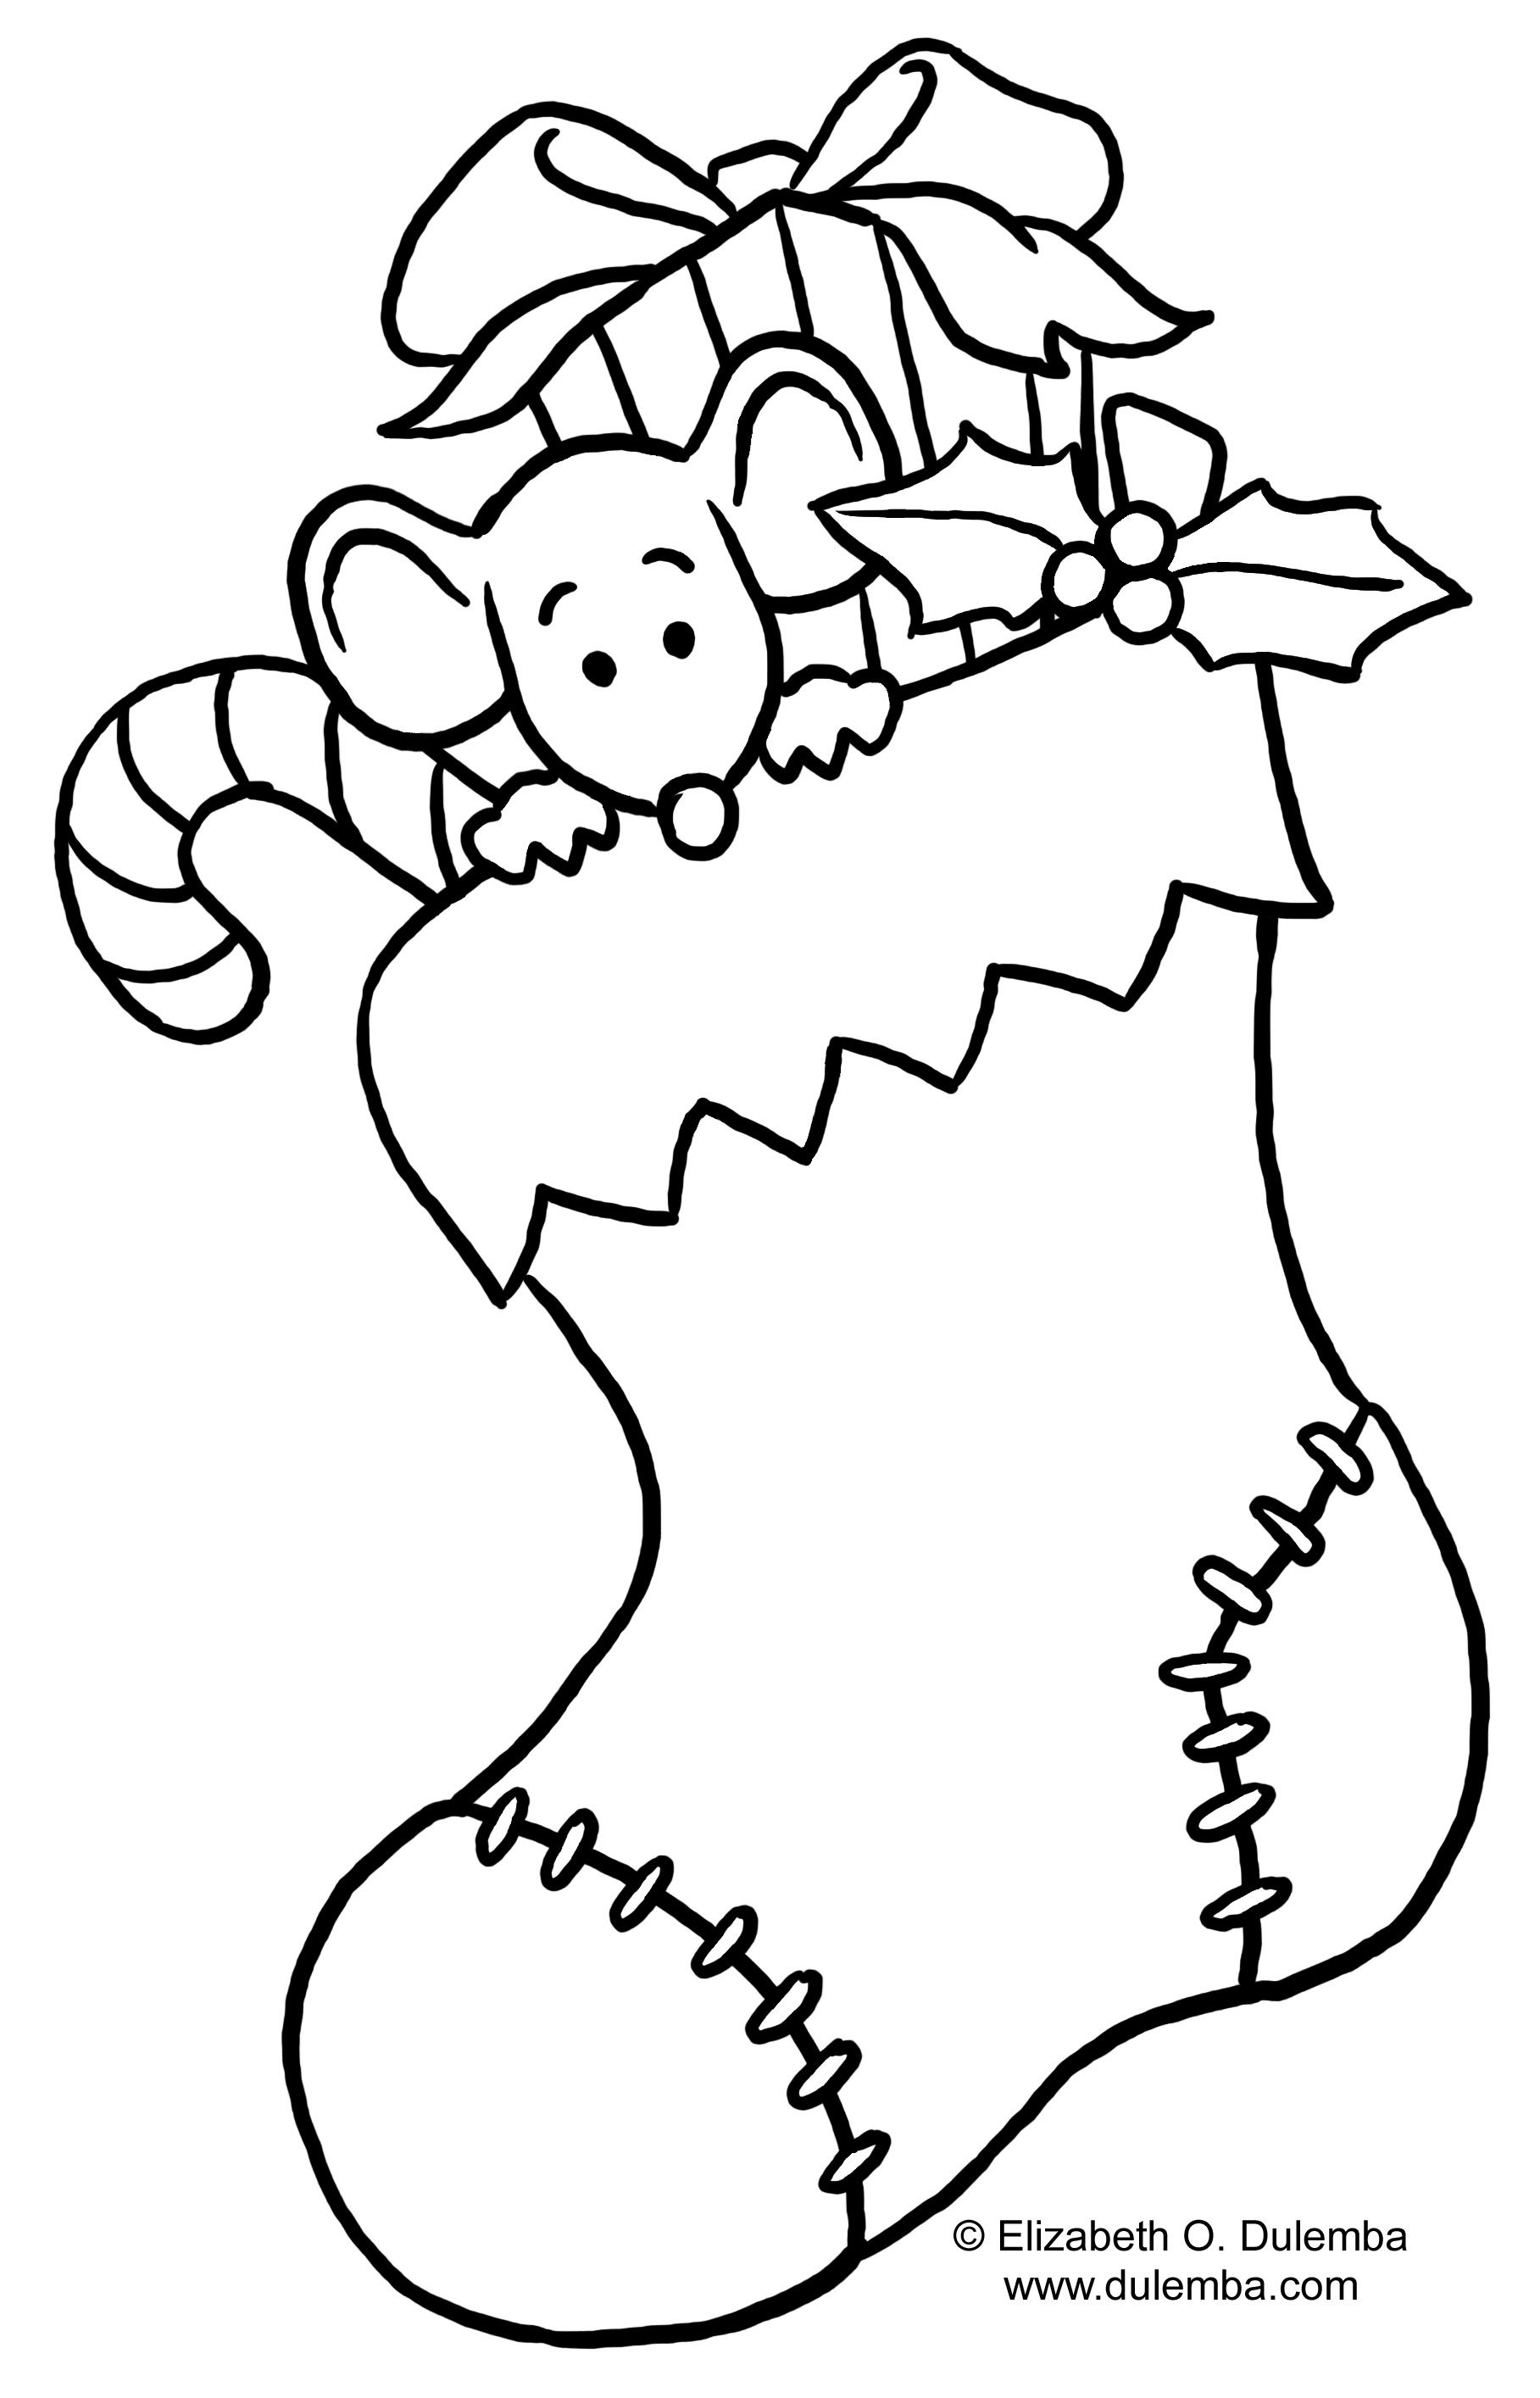 Free coloring pages for christmas printable - Coloring Page Tuesdays Kidlit Creator Interviews Life As An Mfa Student At The University Of Edinburgh And Random Interesting Happenings